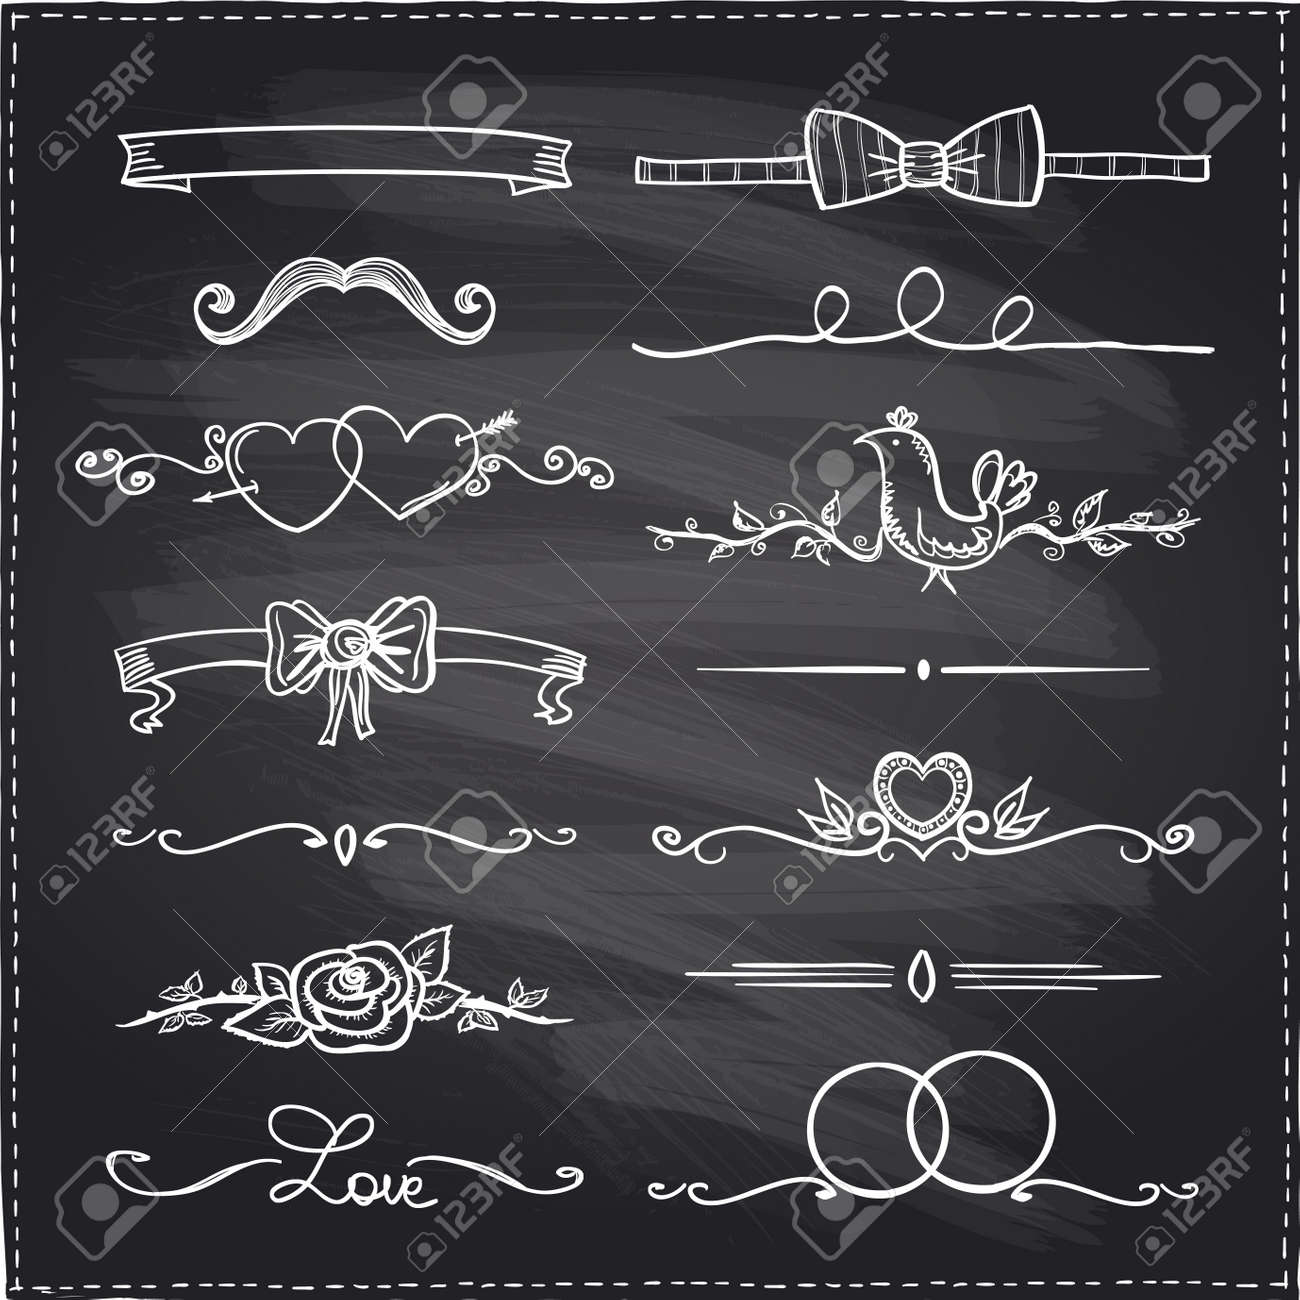 chalkboard hand drawn graphic elements love and wedding theme stock vector 37187622